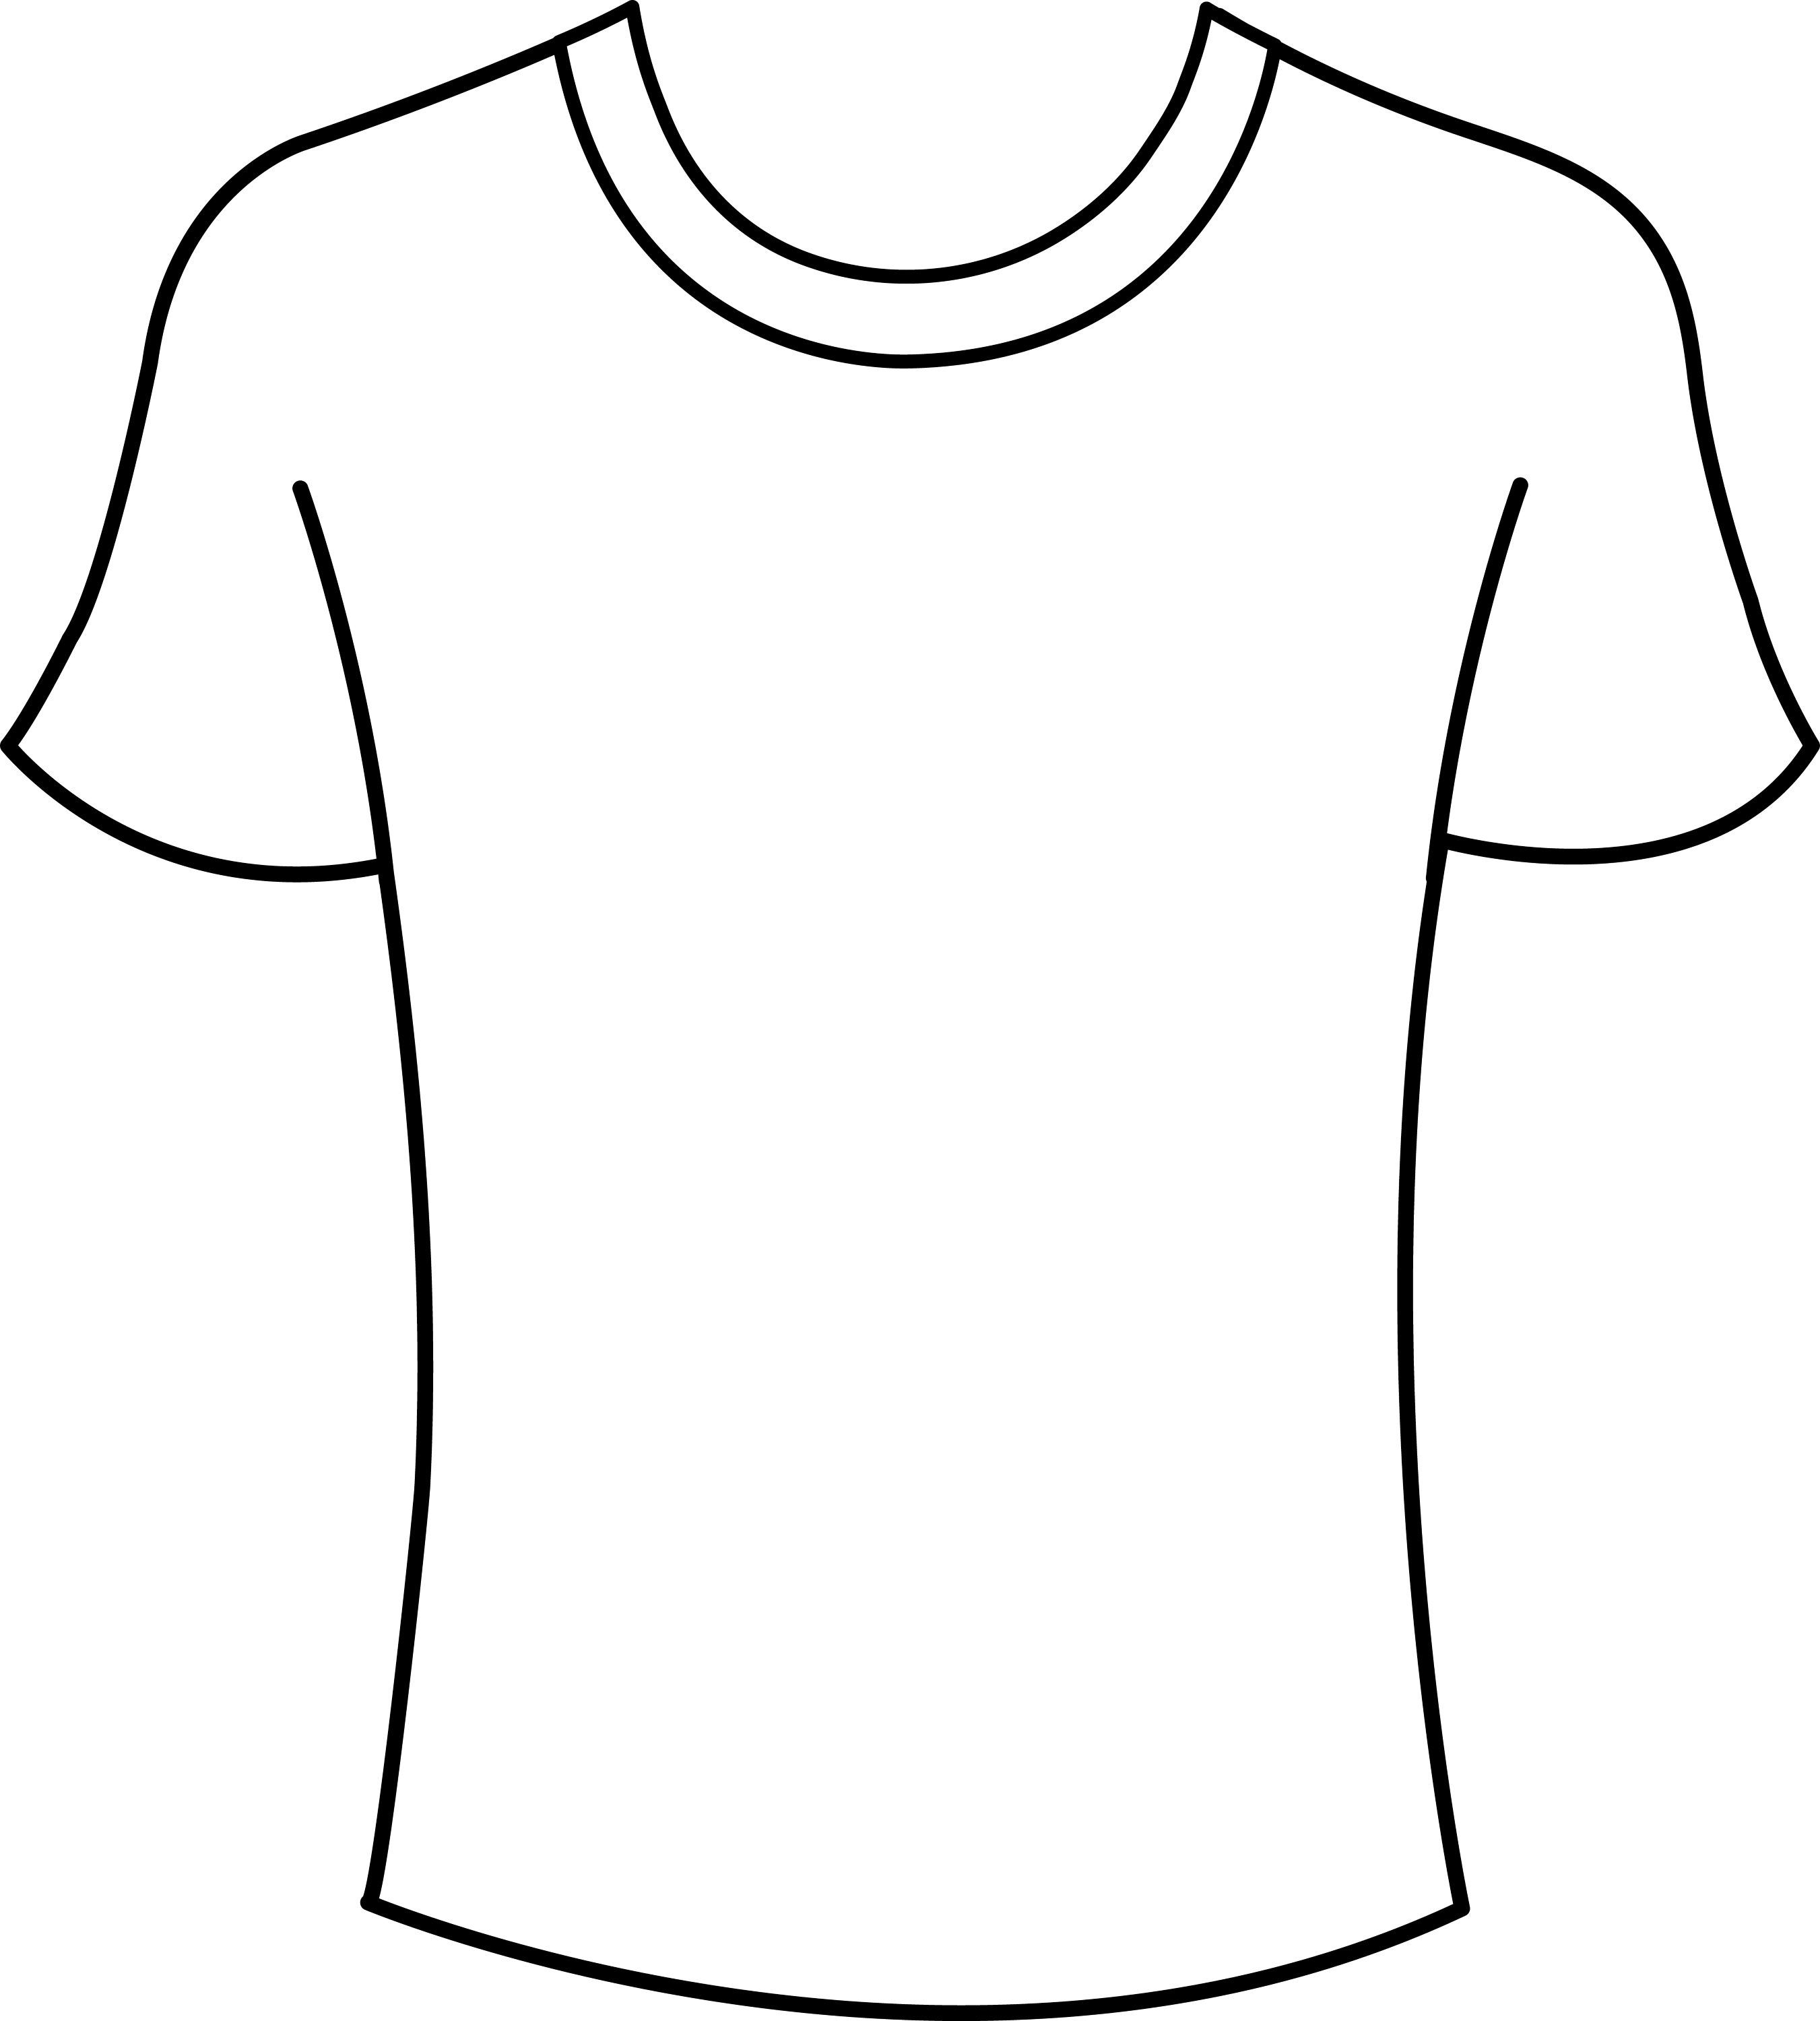 shirt template clip art LgbreTyw